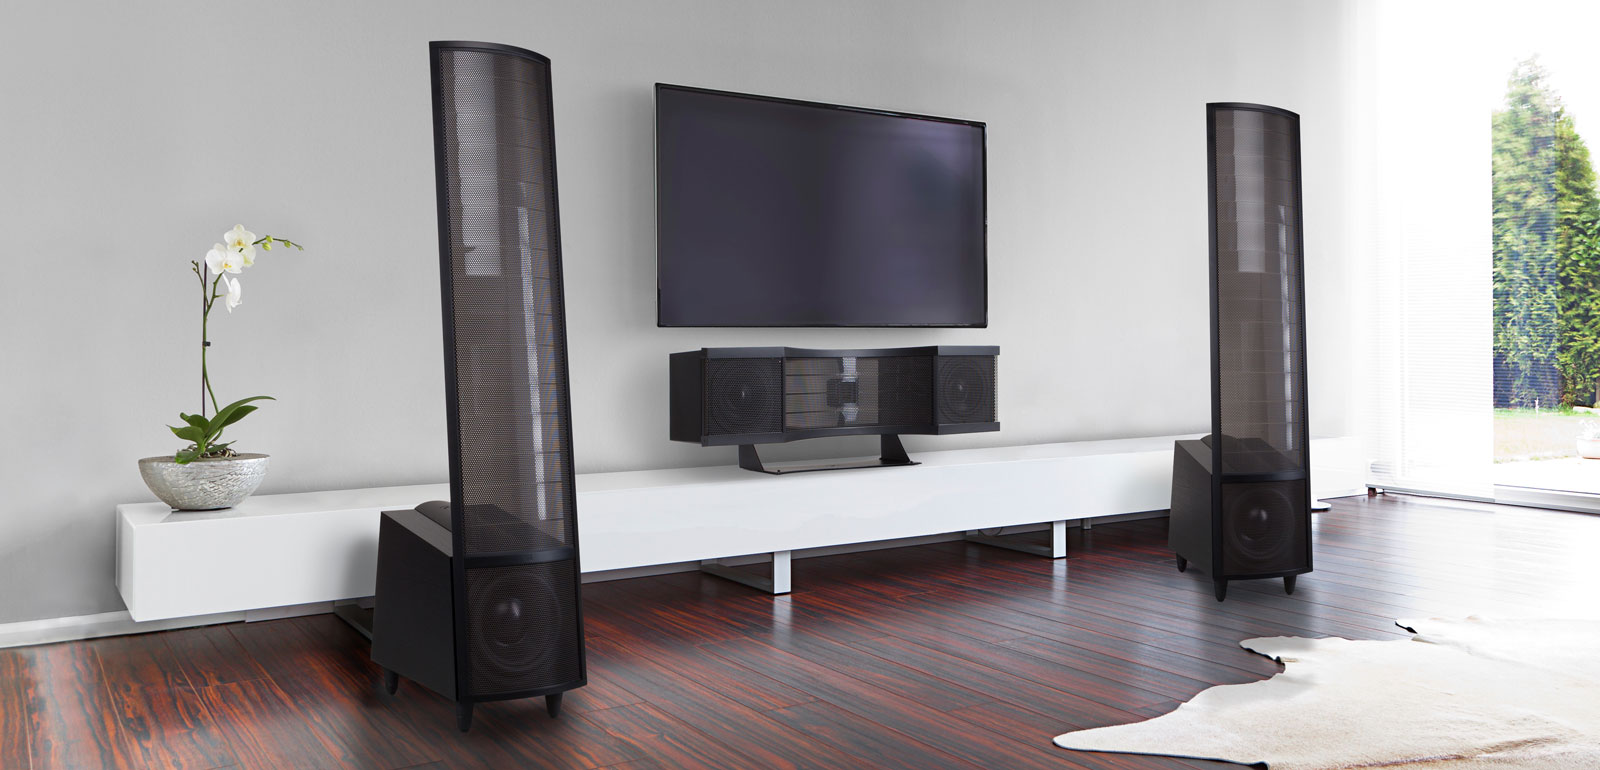 Lifestyle Picture of elaborate room with Martin Logan tower and Stage X center channel speakers